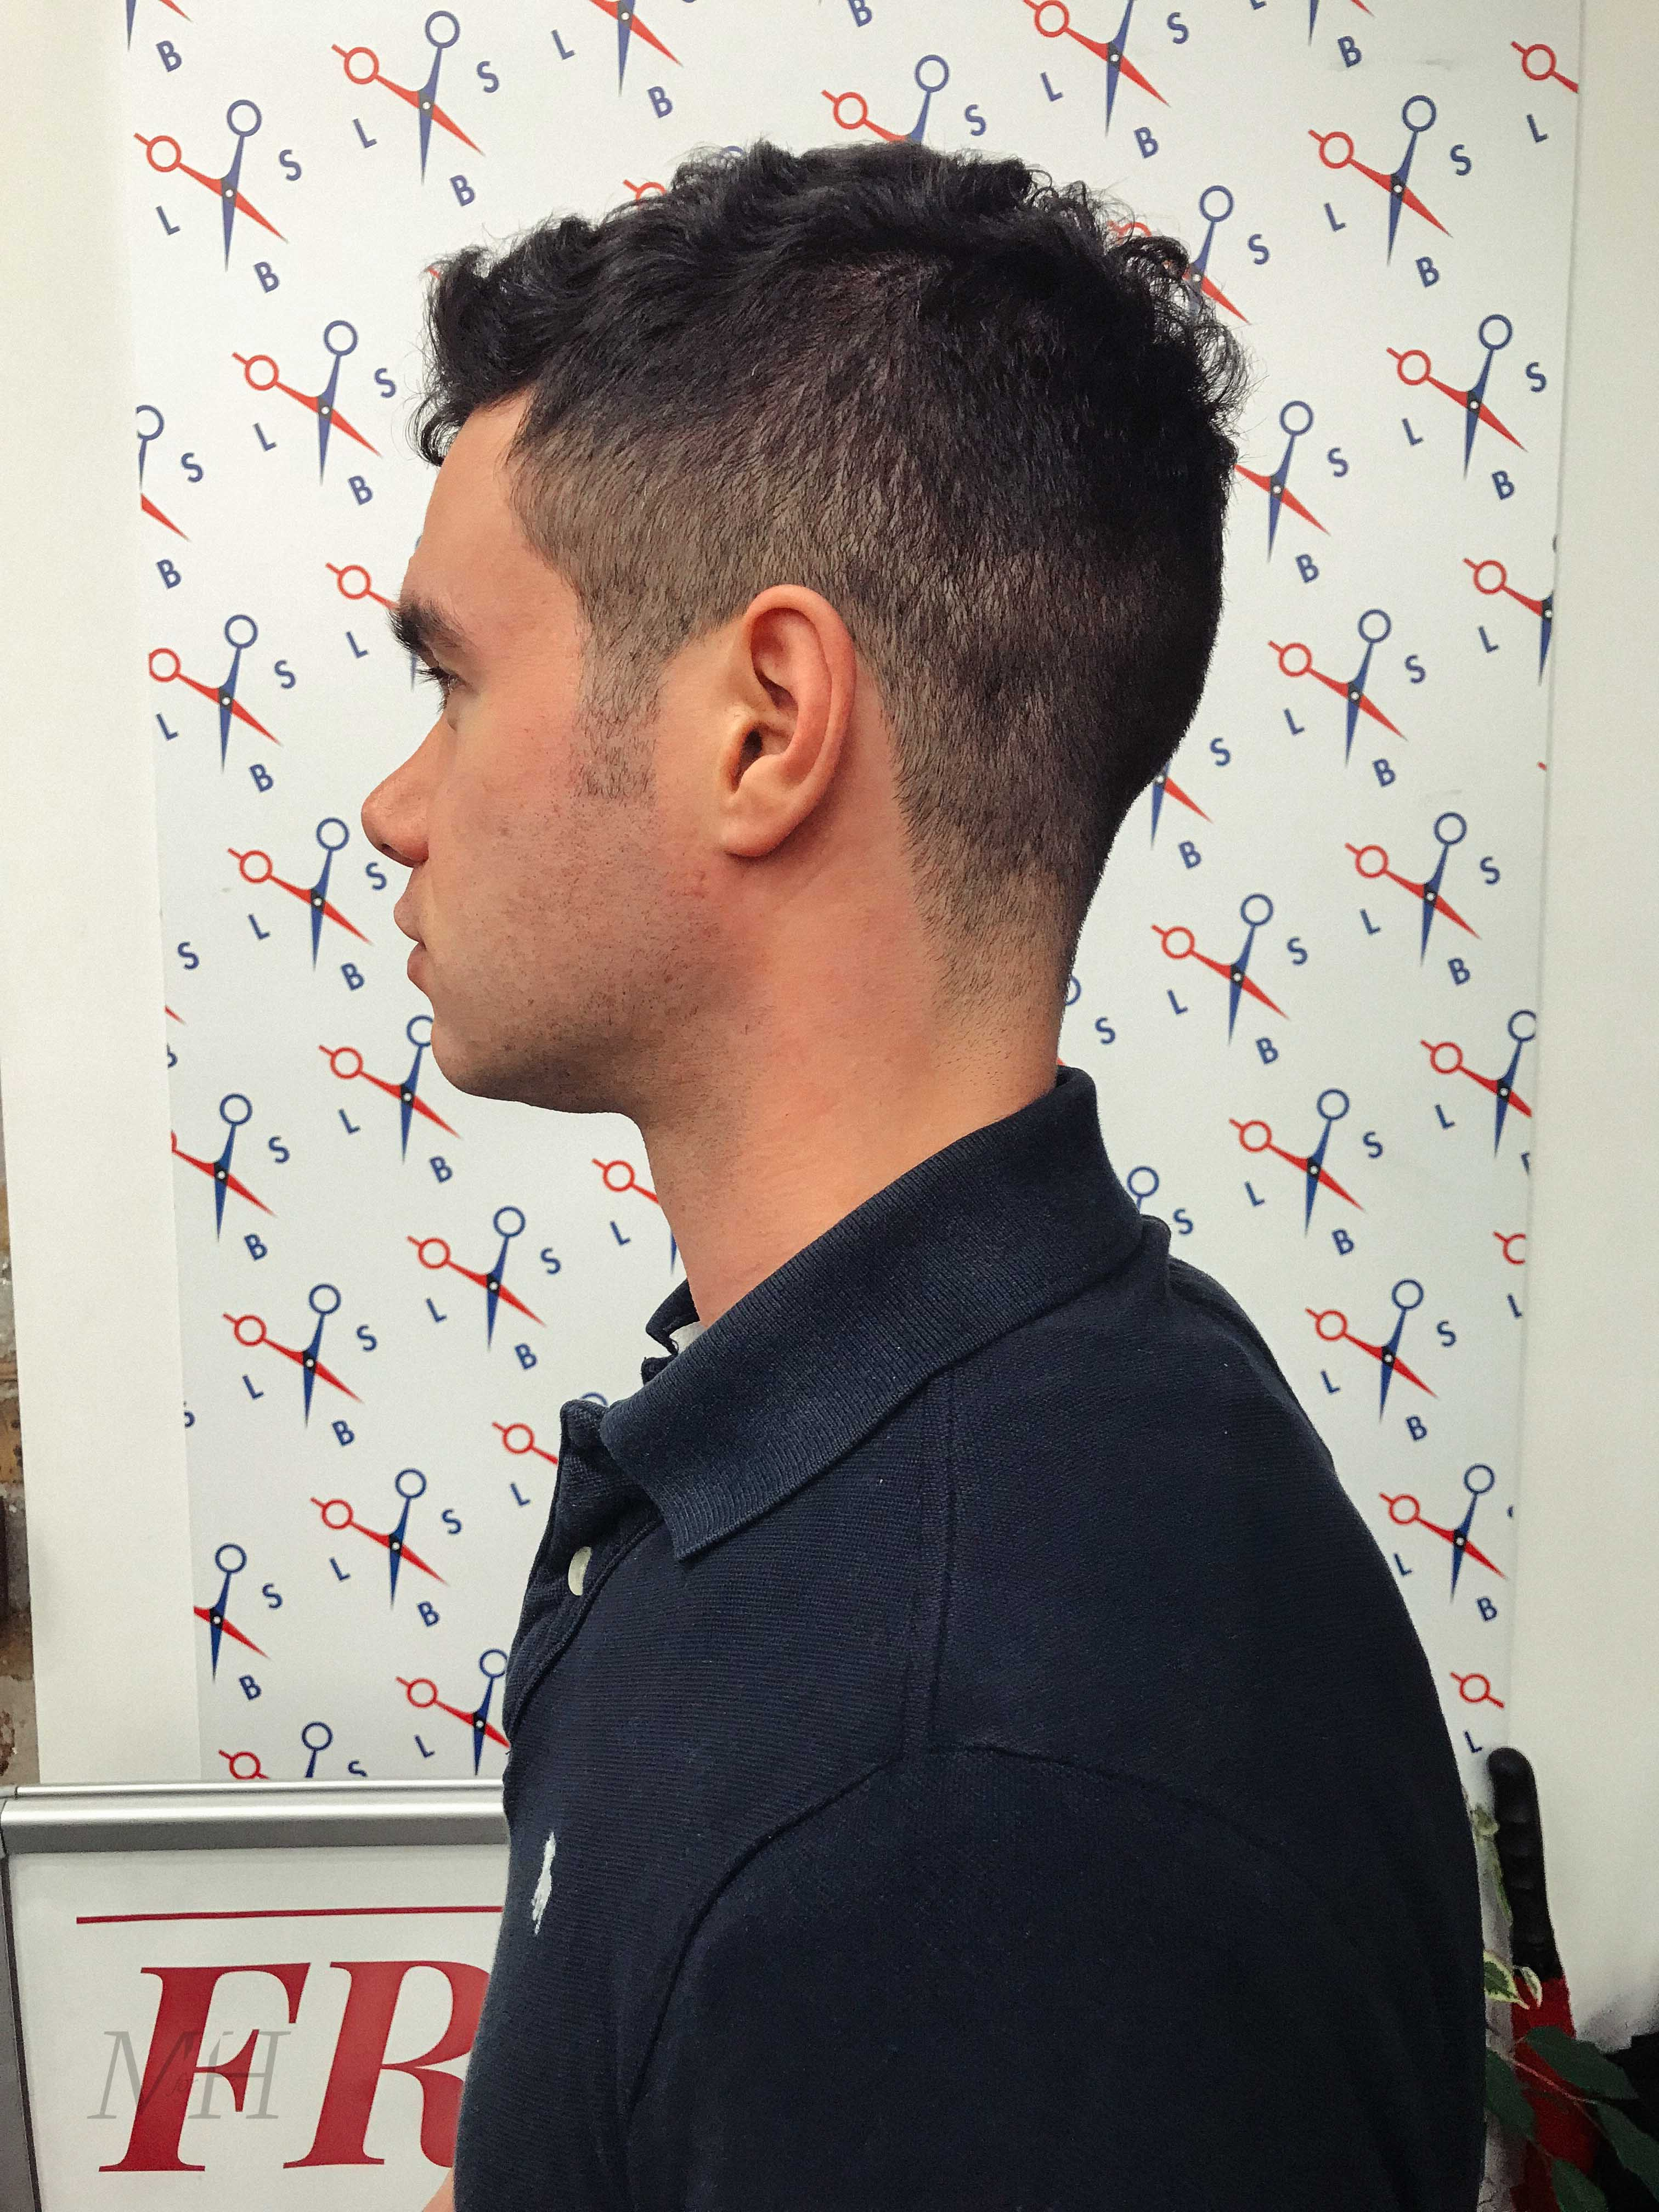 Robin-James-Man-For-Himself-Barber-Haircut-Cuts-6